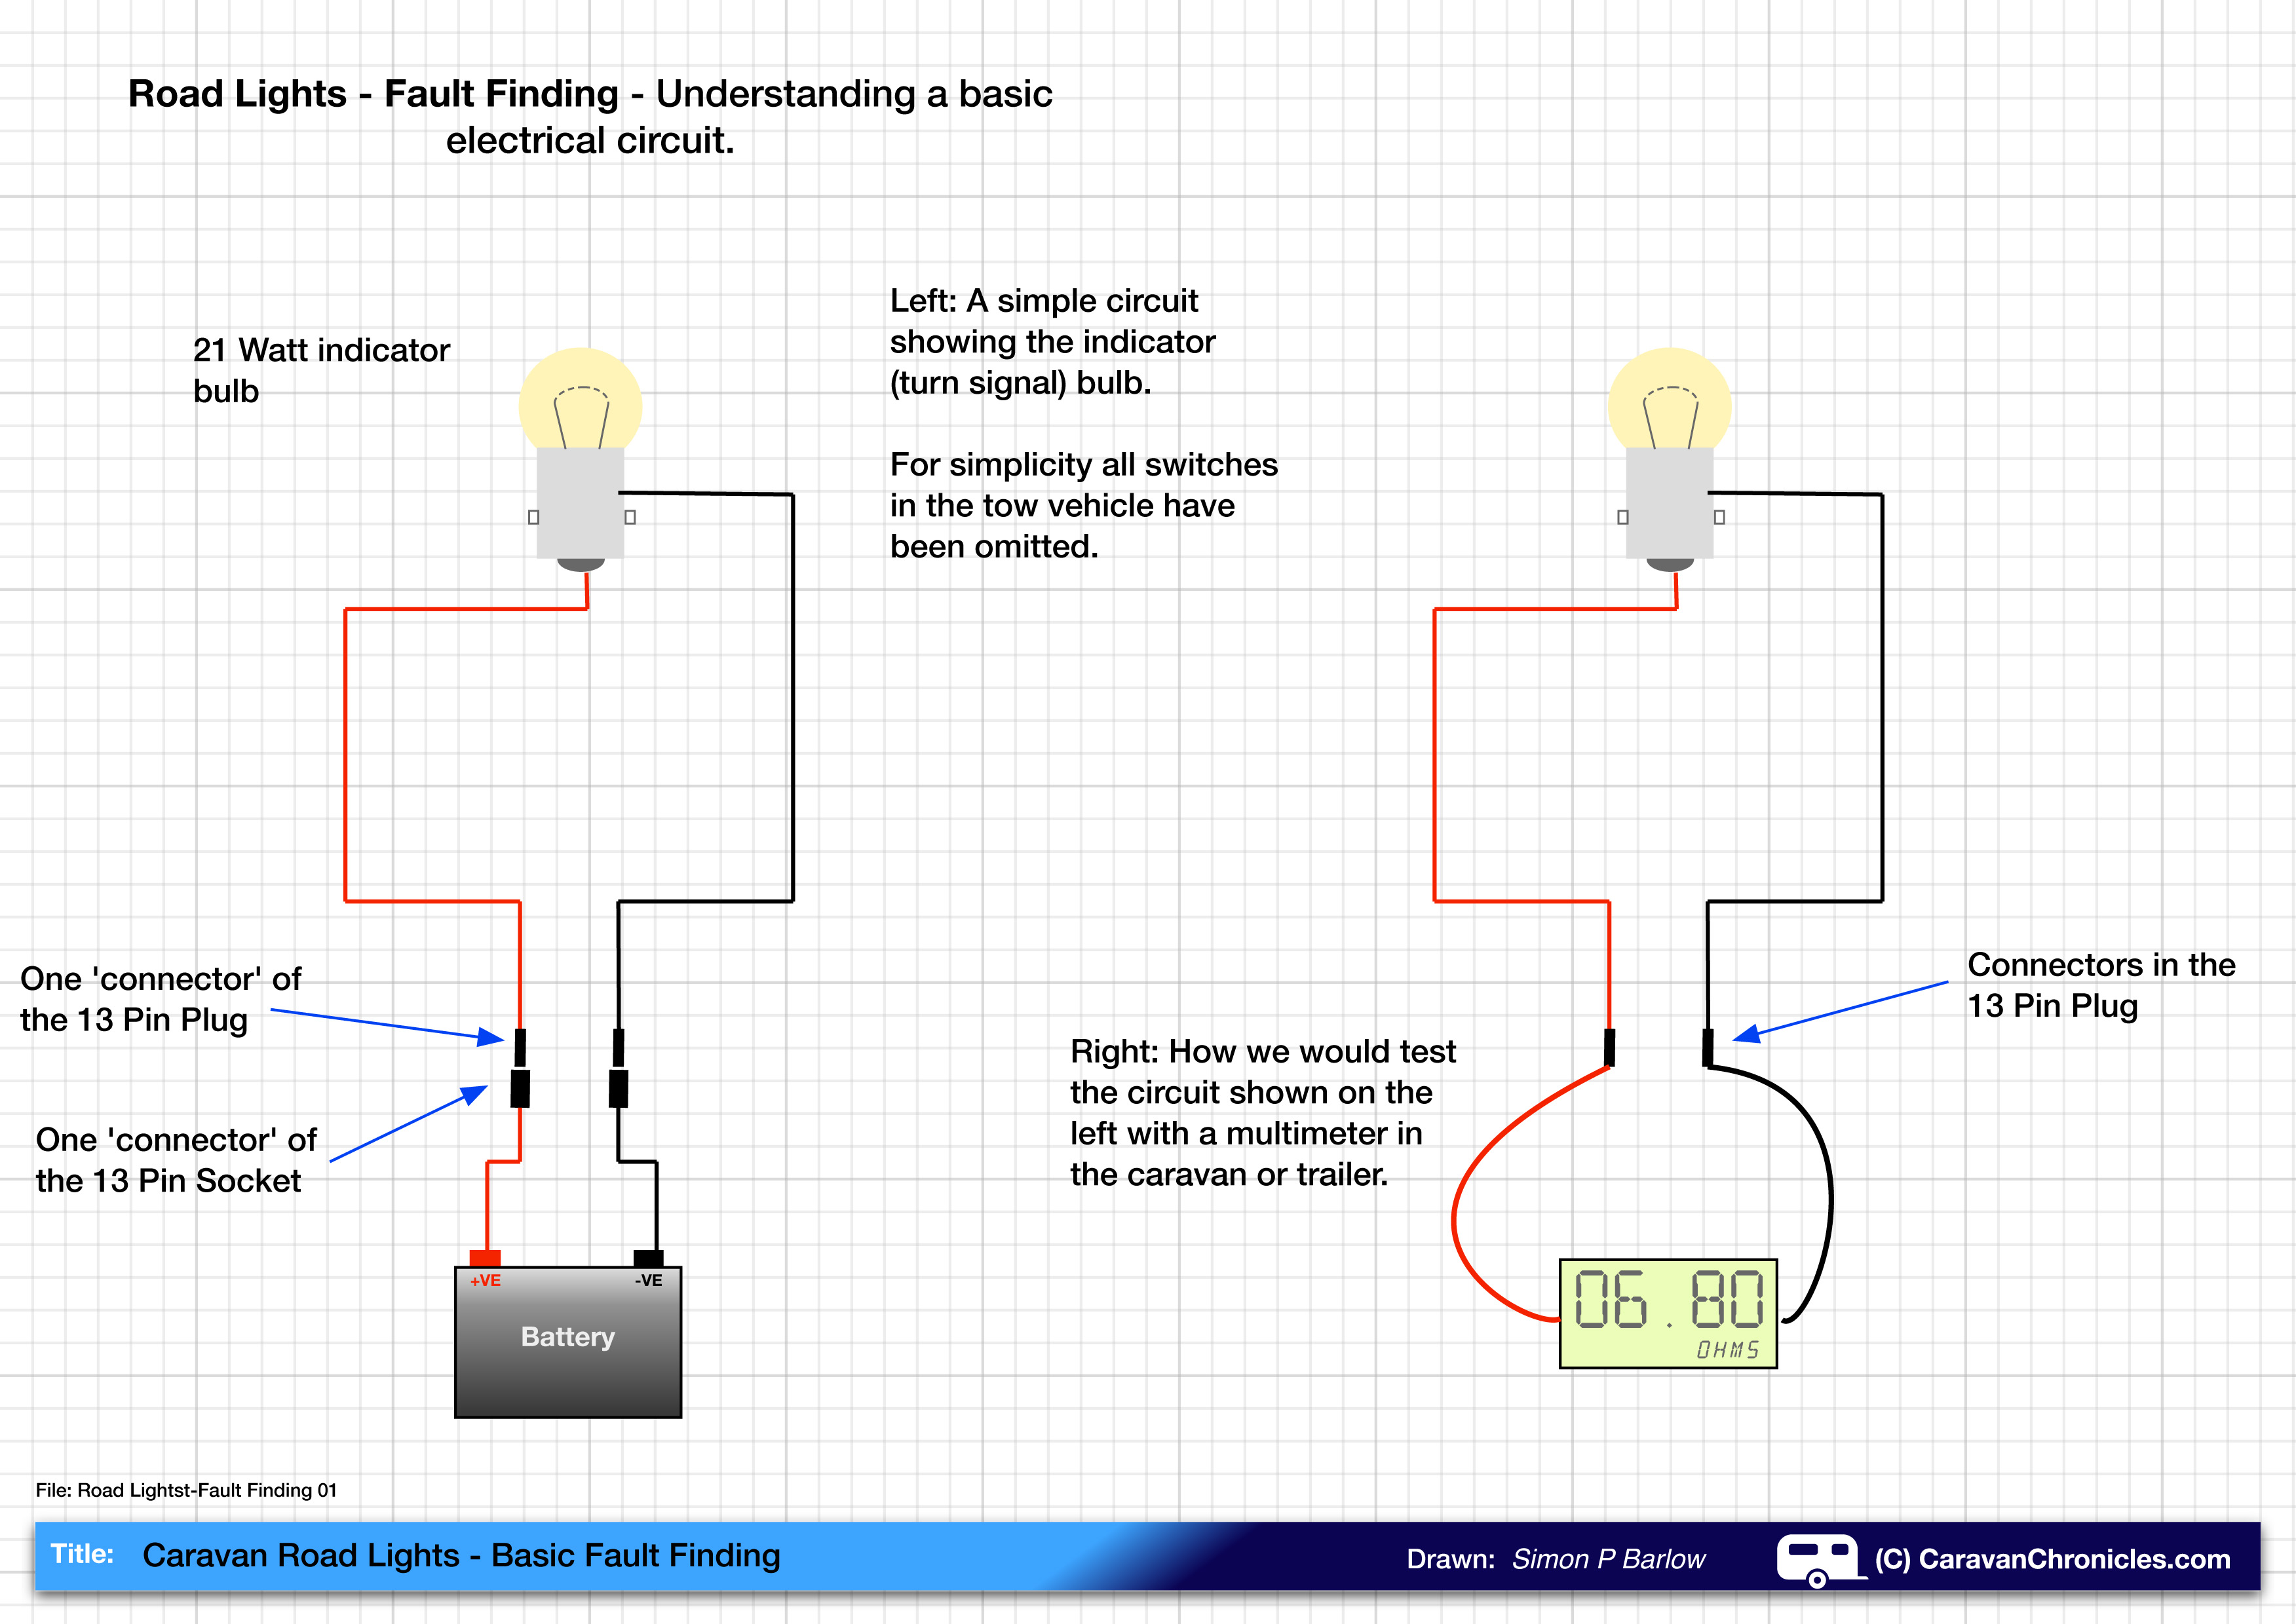 road light fault finding 01 1 caravan road lights basic fault finding caravan chronicles elddis caravan wiring diagram at n-0.co